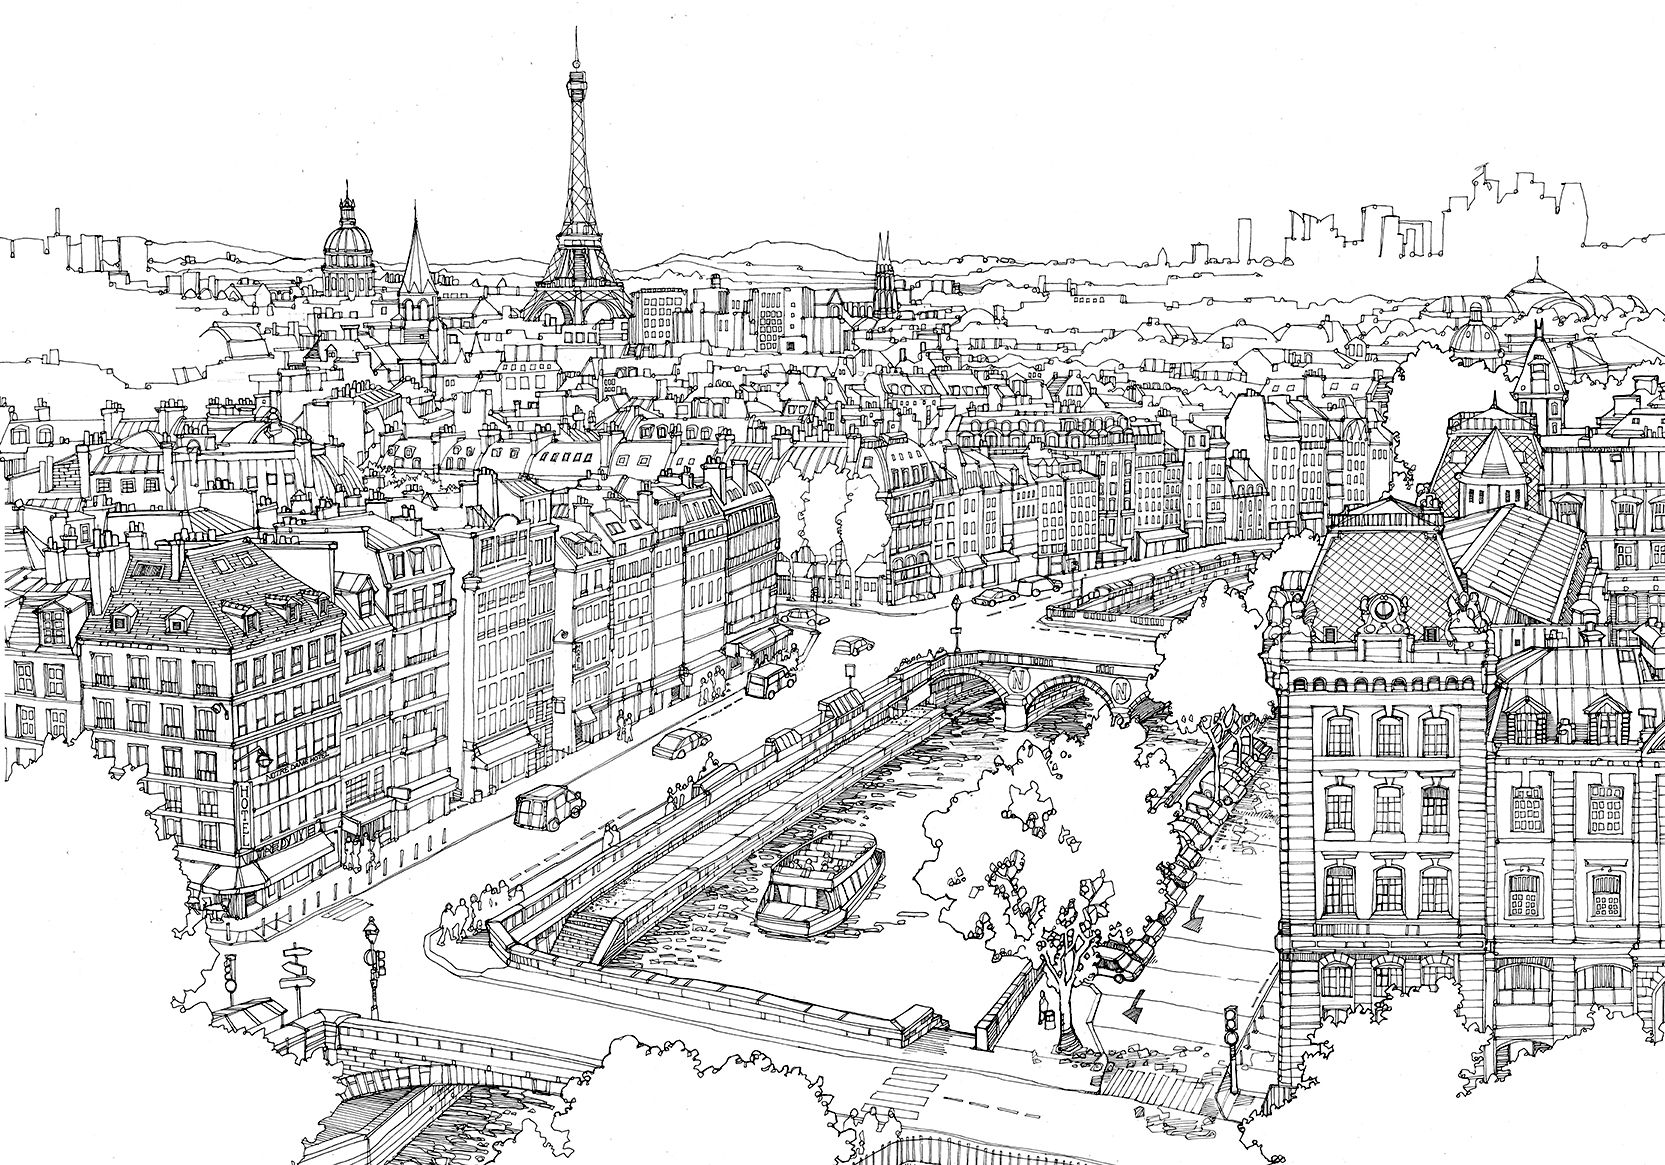 Paris City Line Drawing Jpg 1665 1165 City Illustration